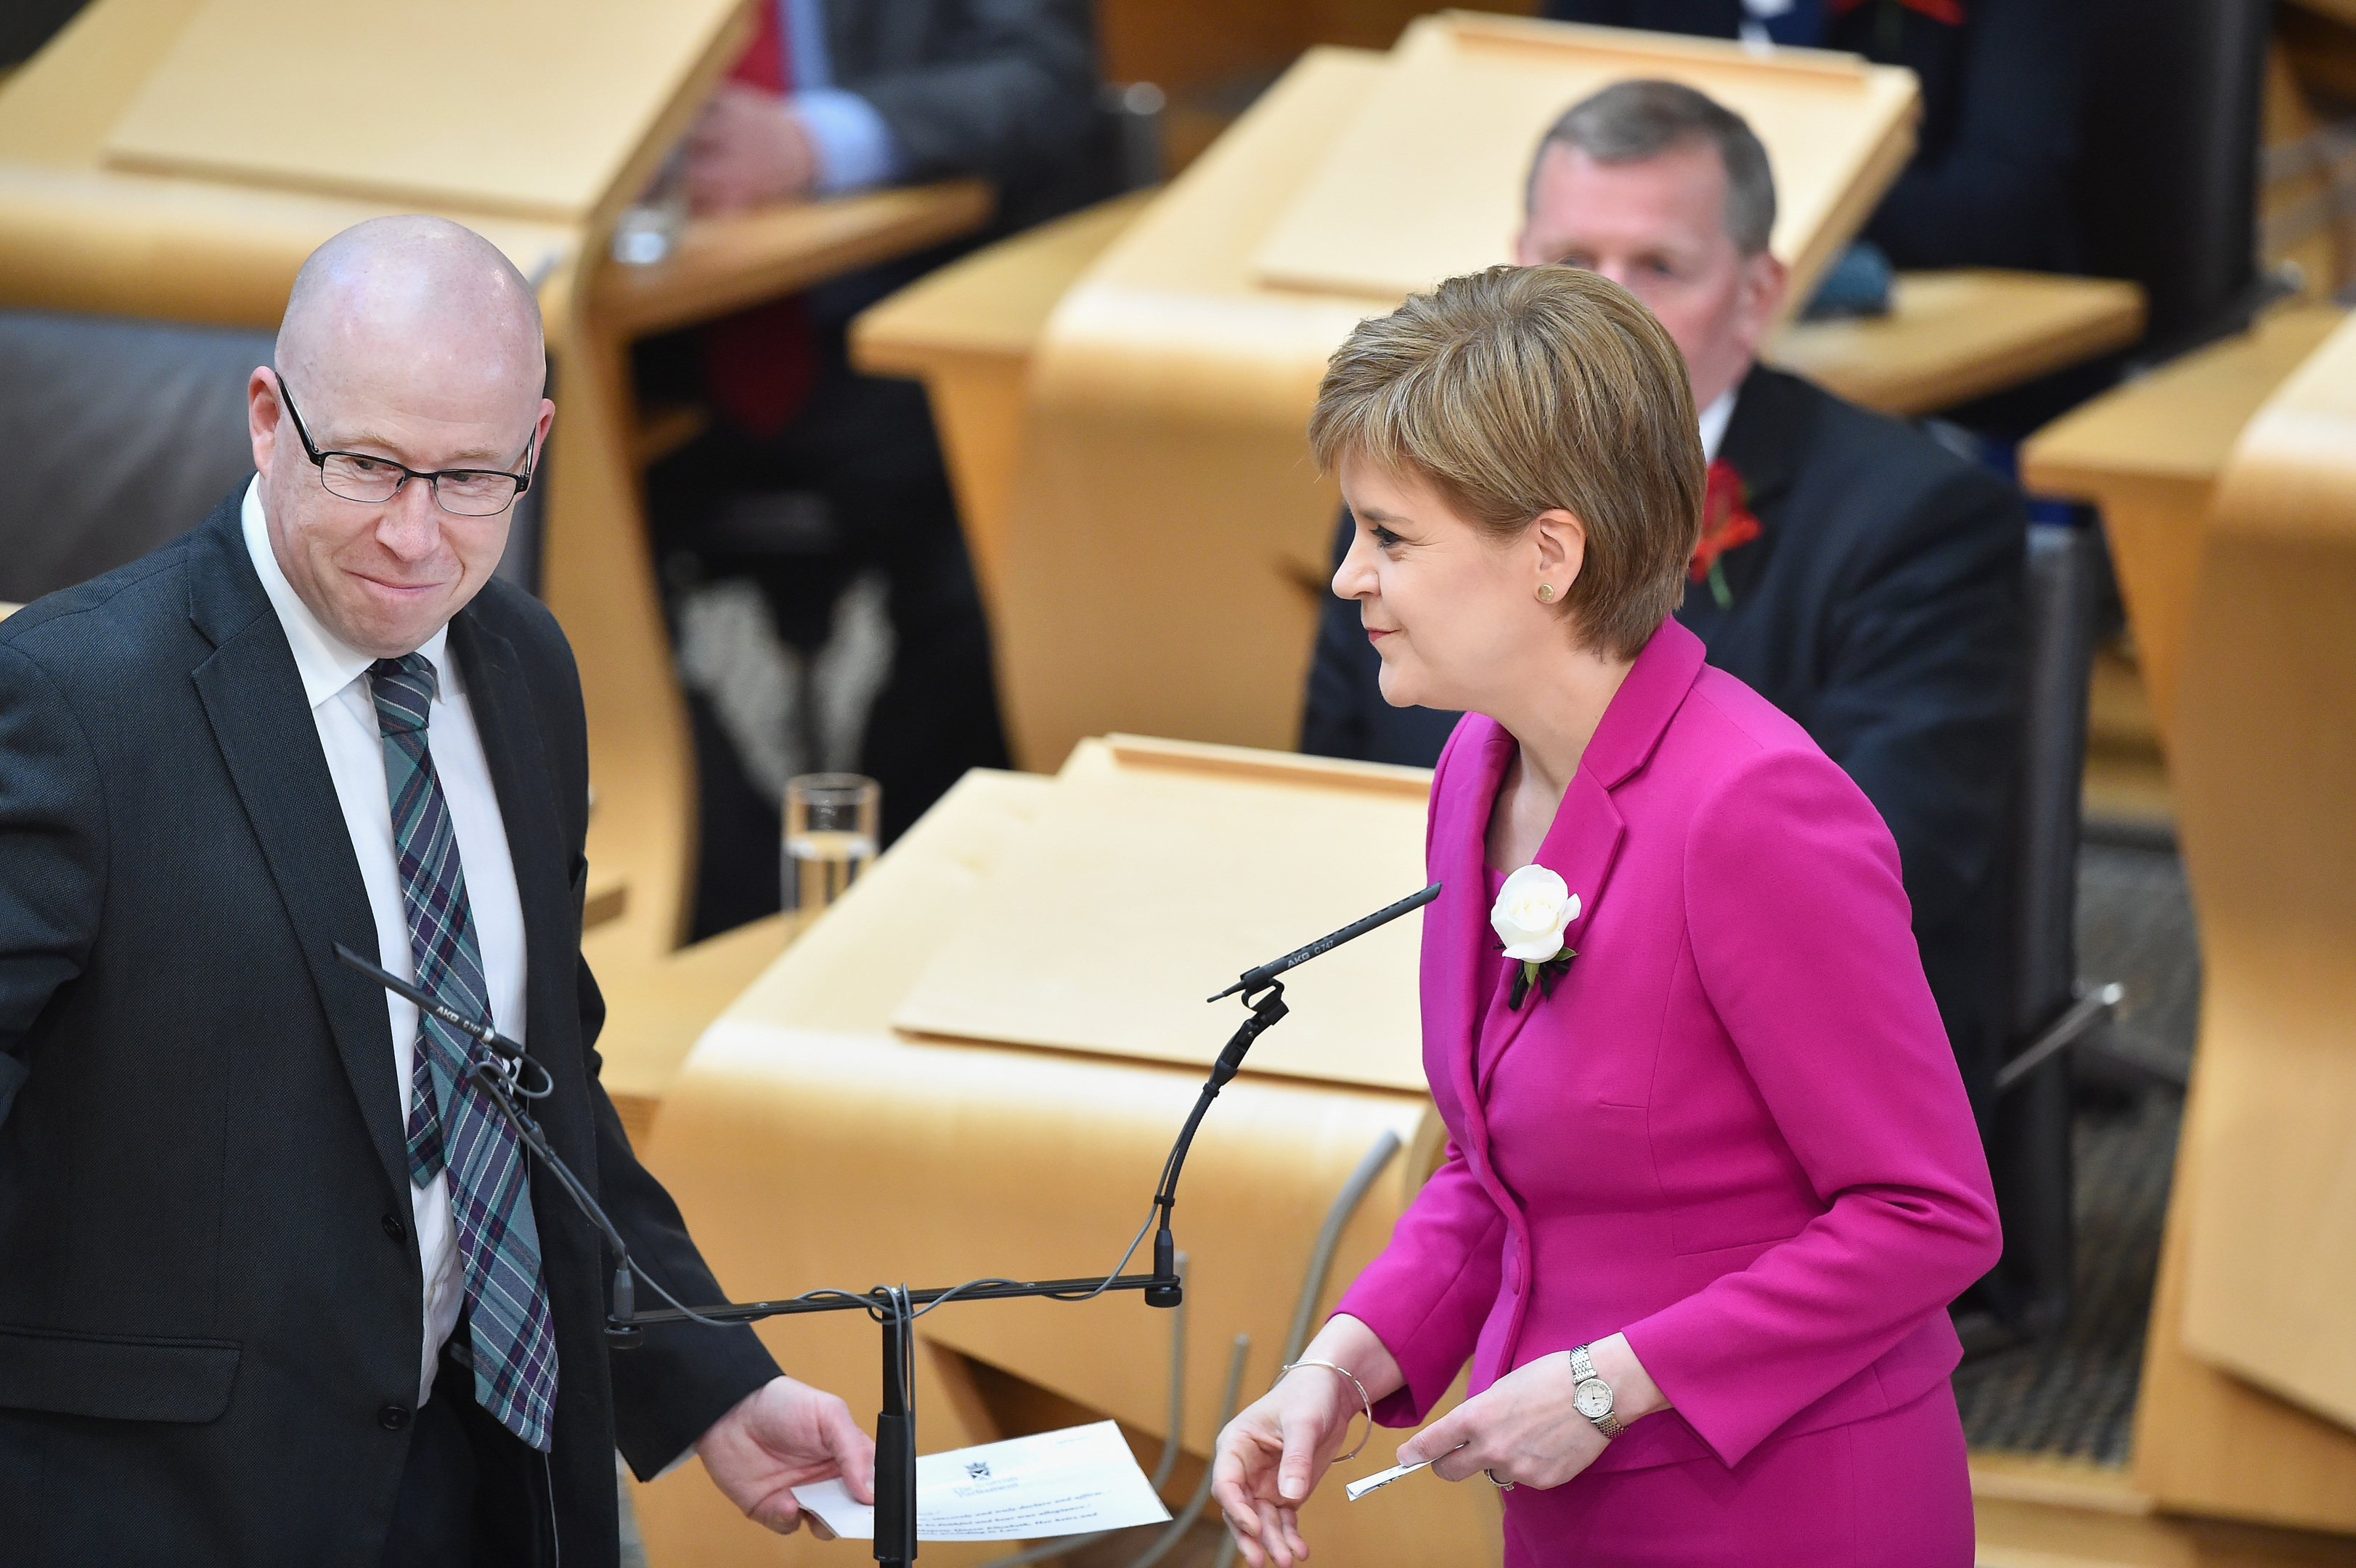 First Minister Nicola Sturgeon is sworn in for the fifth session of the Scottish Parliament.